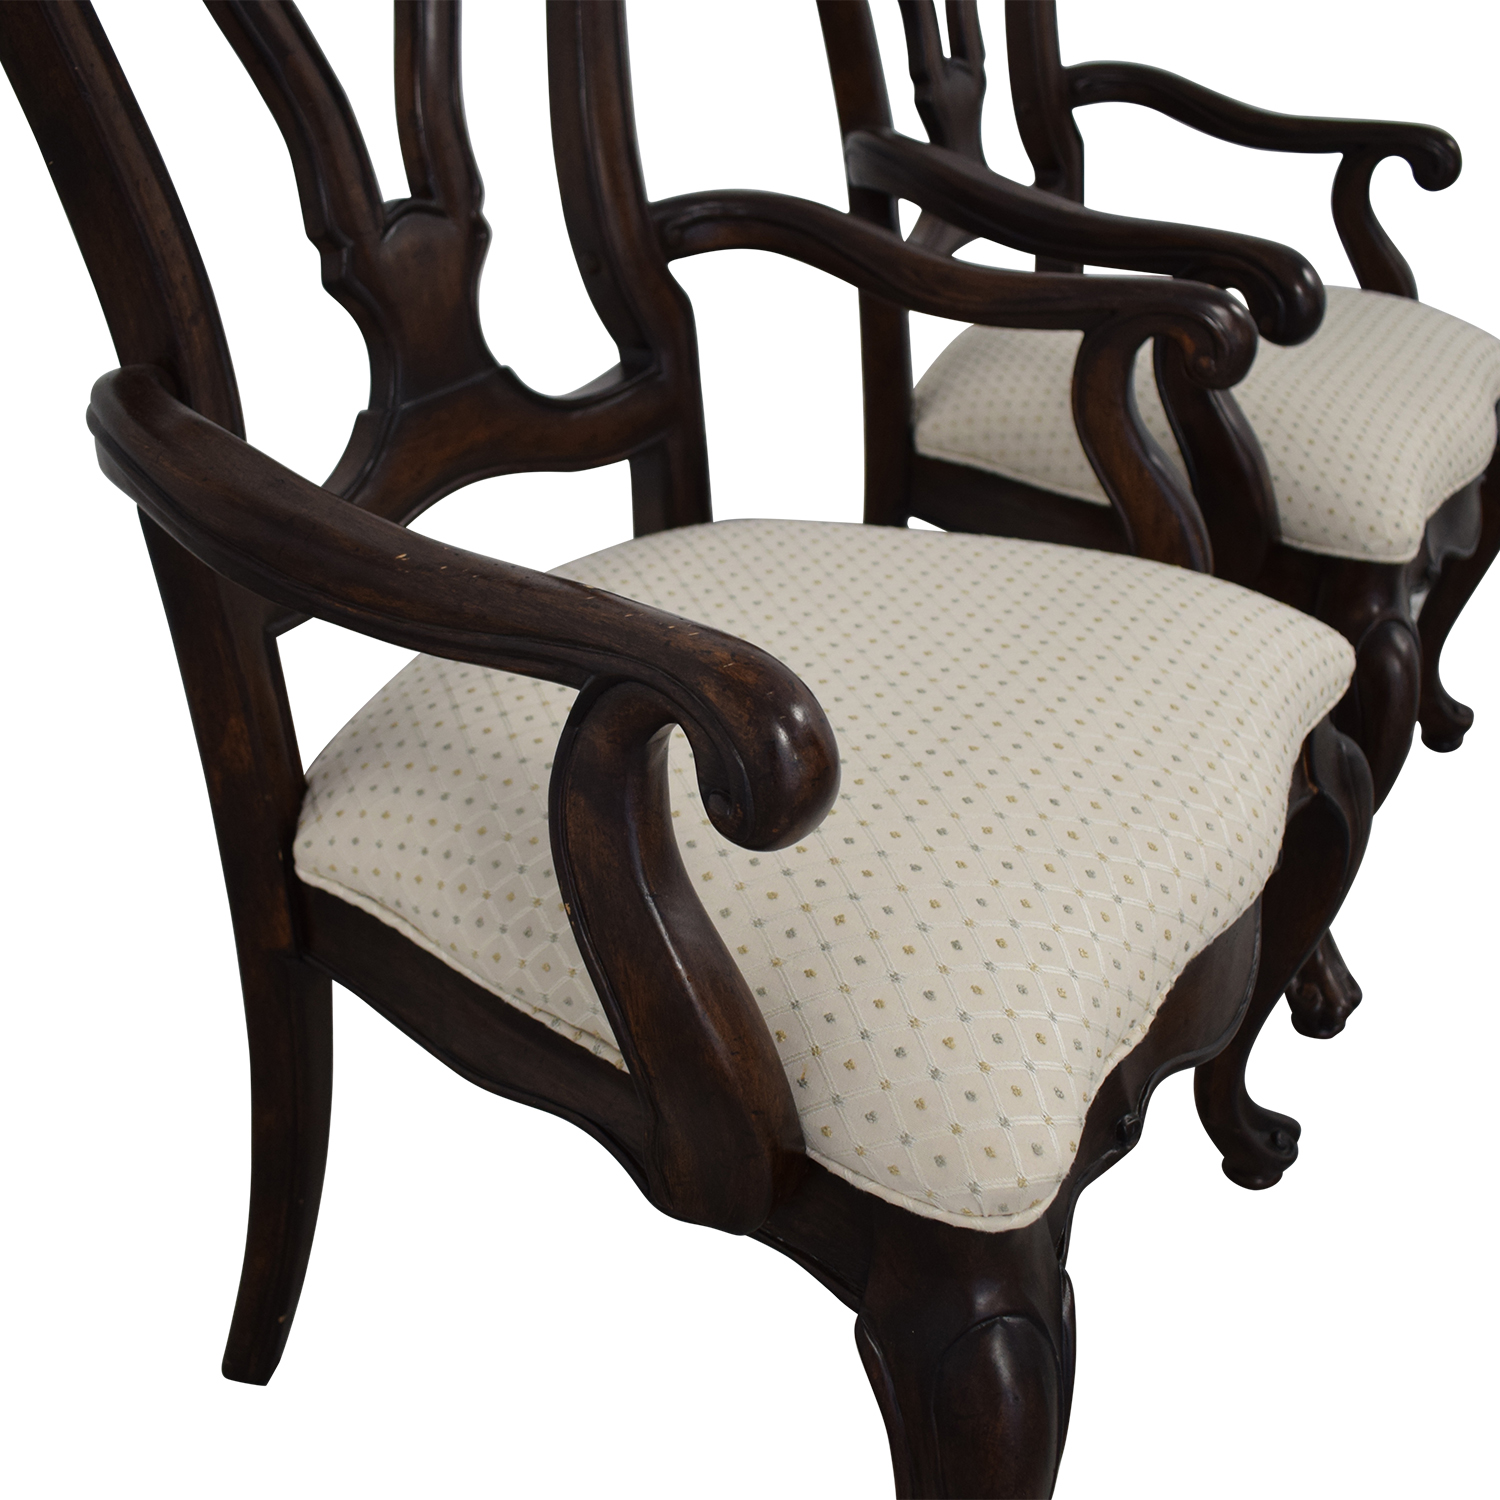 Thomasville San Martino Dining Arm Chairs / Dining Chairs